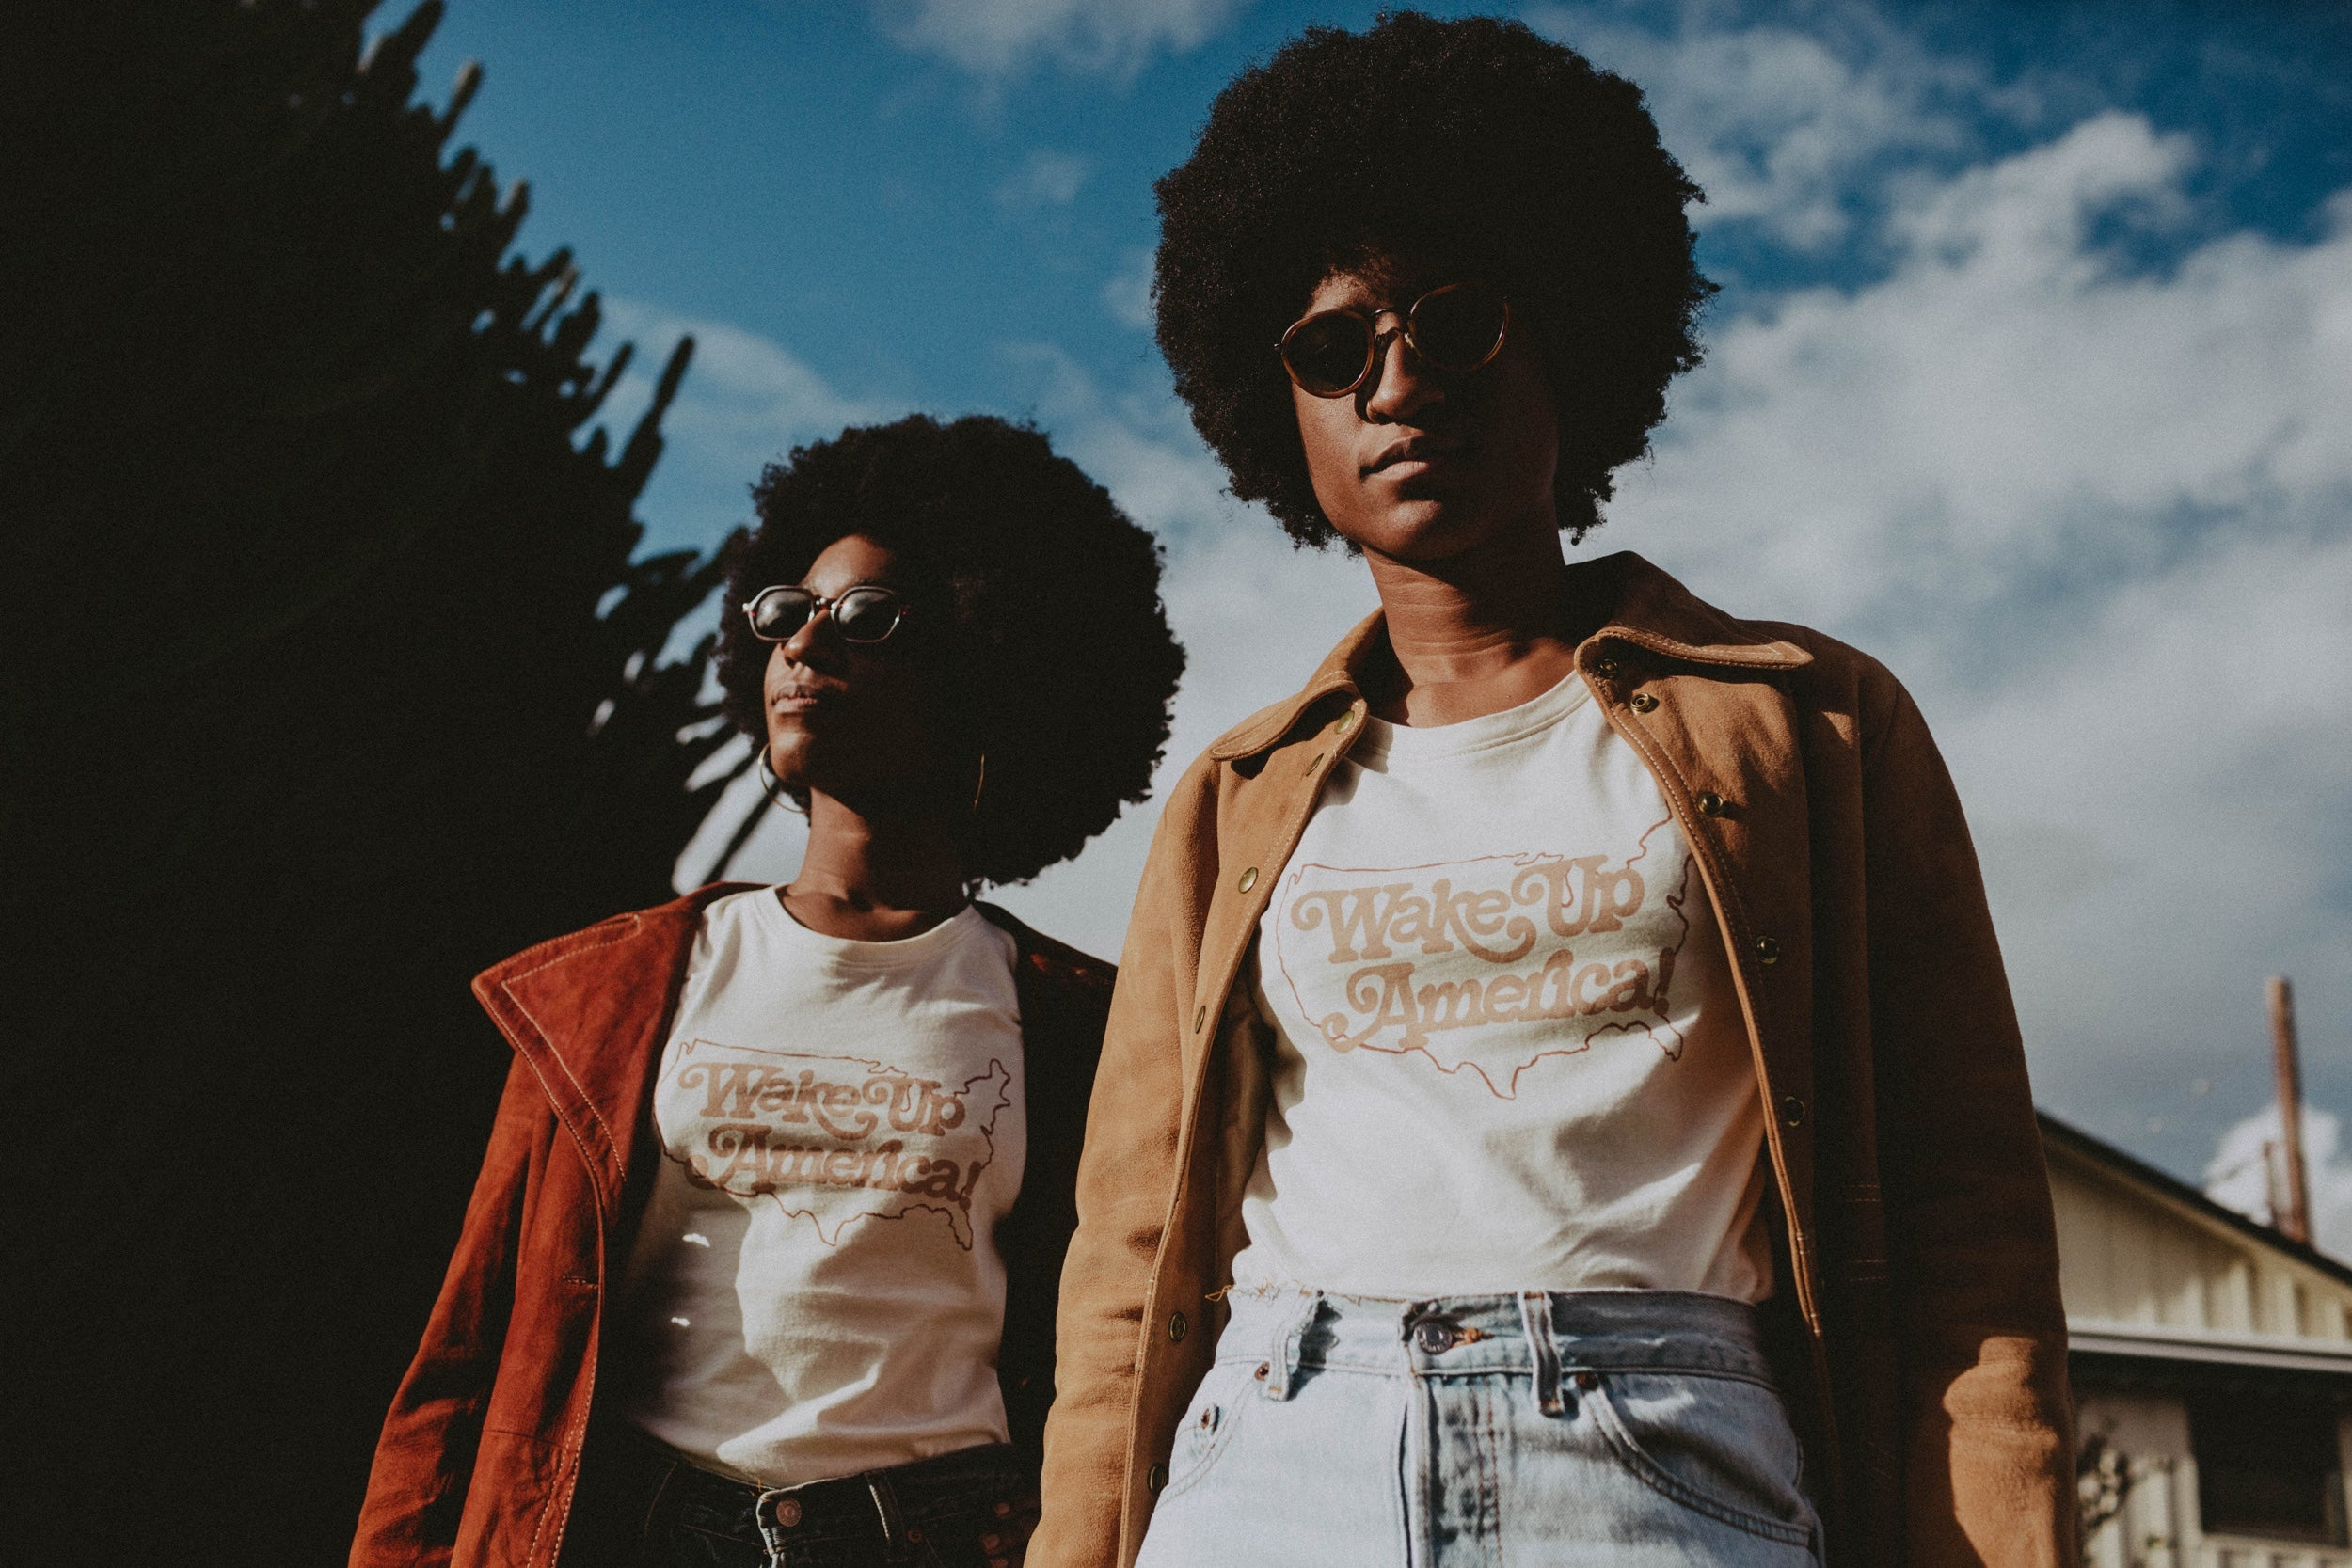 Image of a two models wearing coats and sunglasses against a sky background